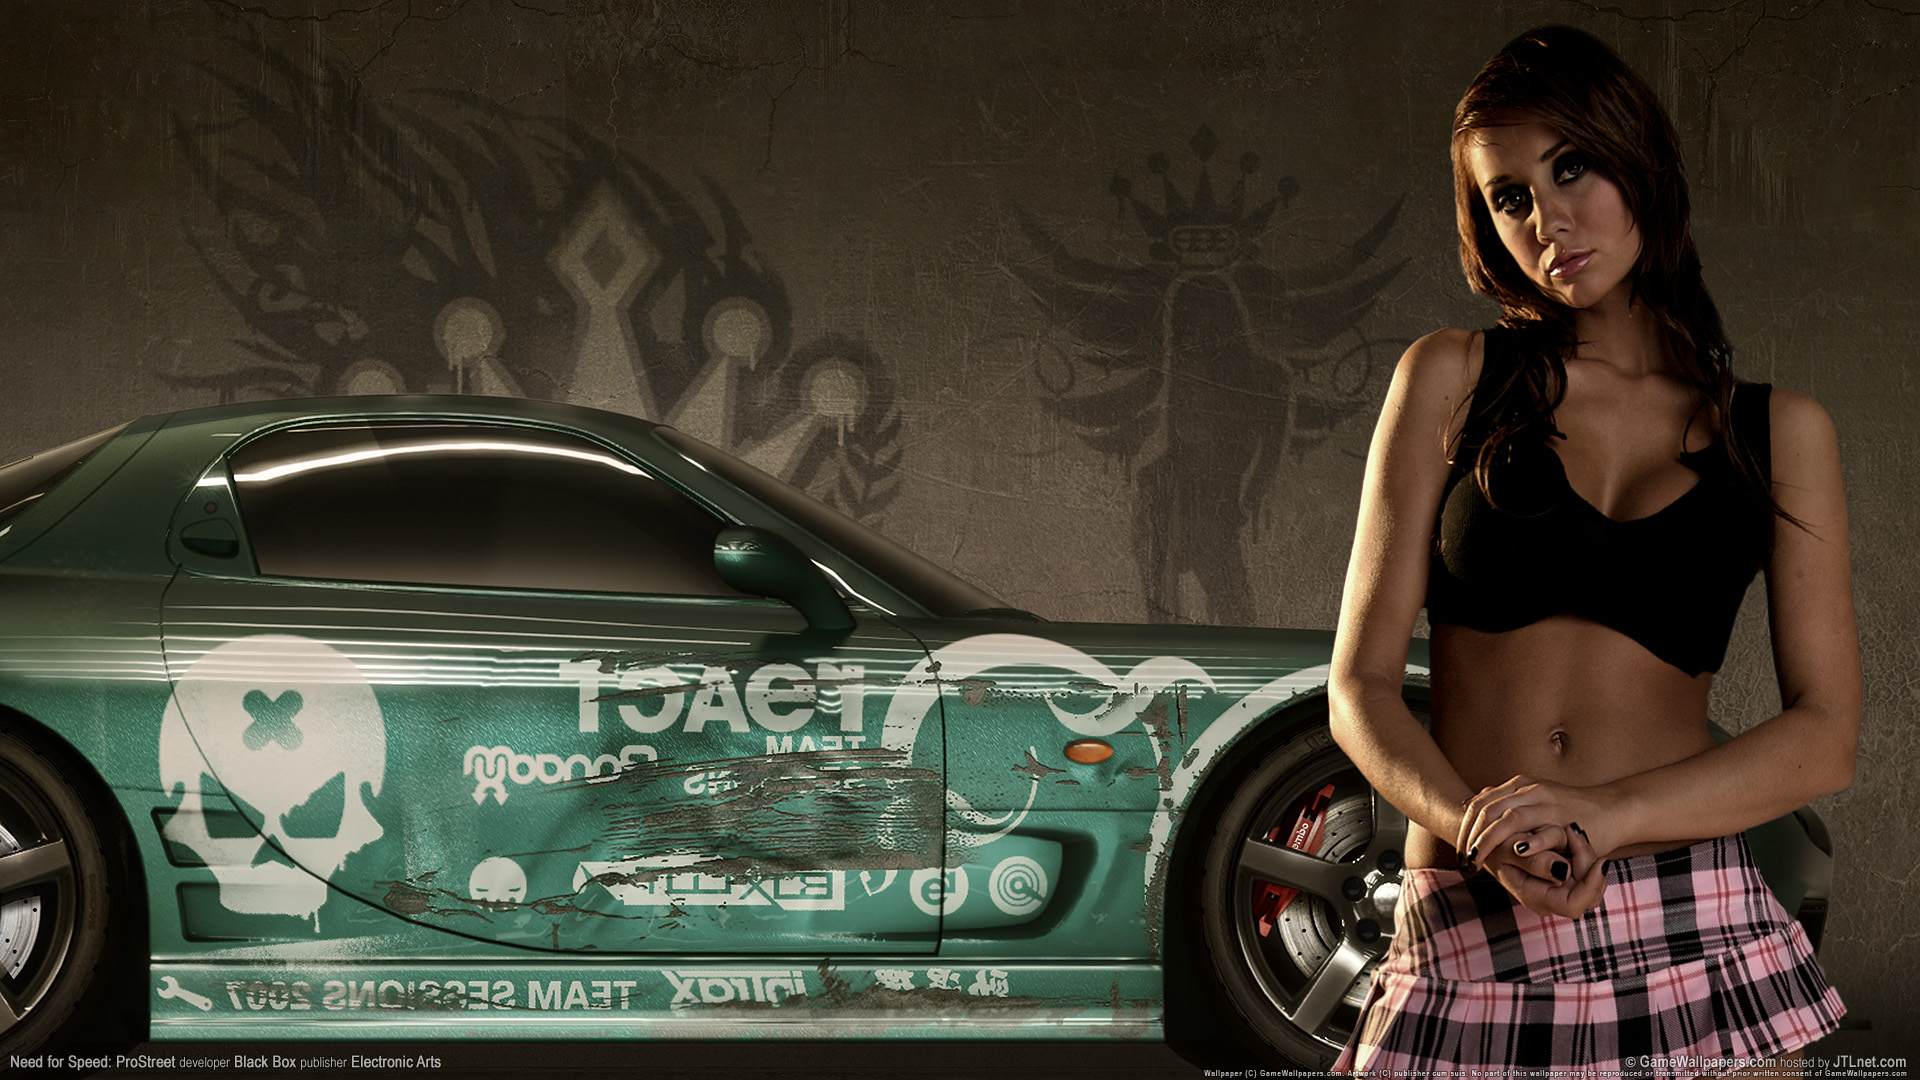 HD Wallpapers Need for speed prostreet Girls 2